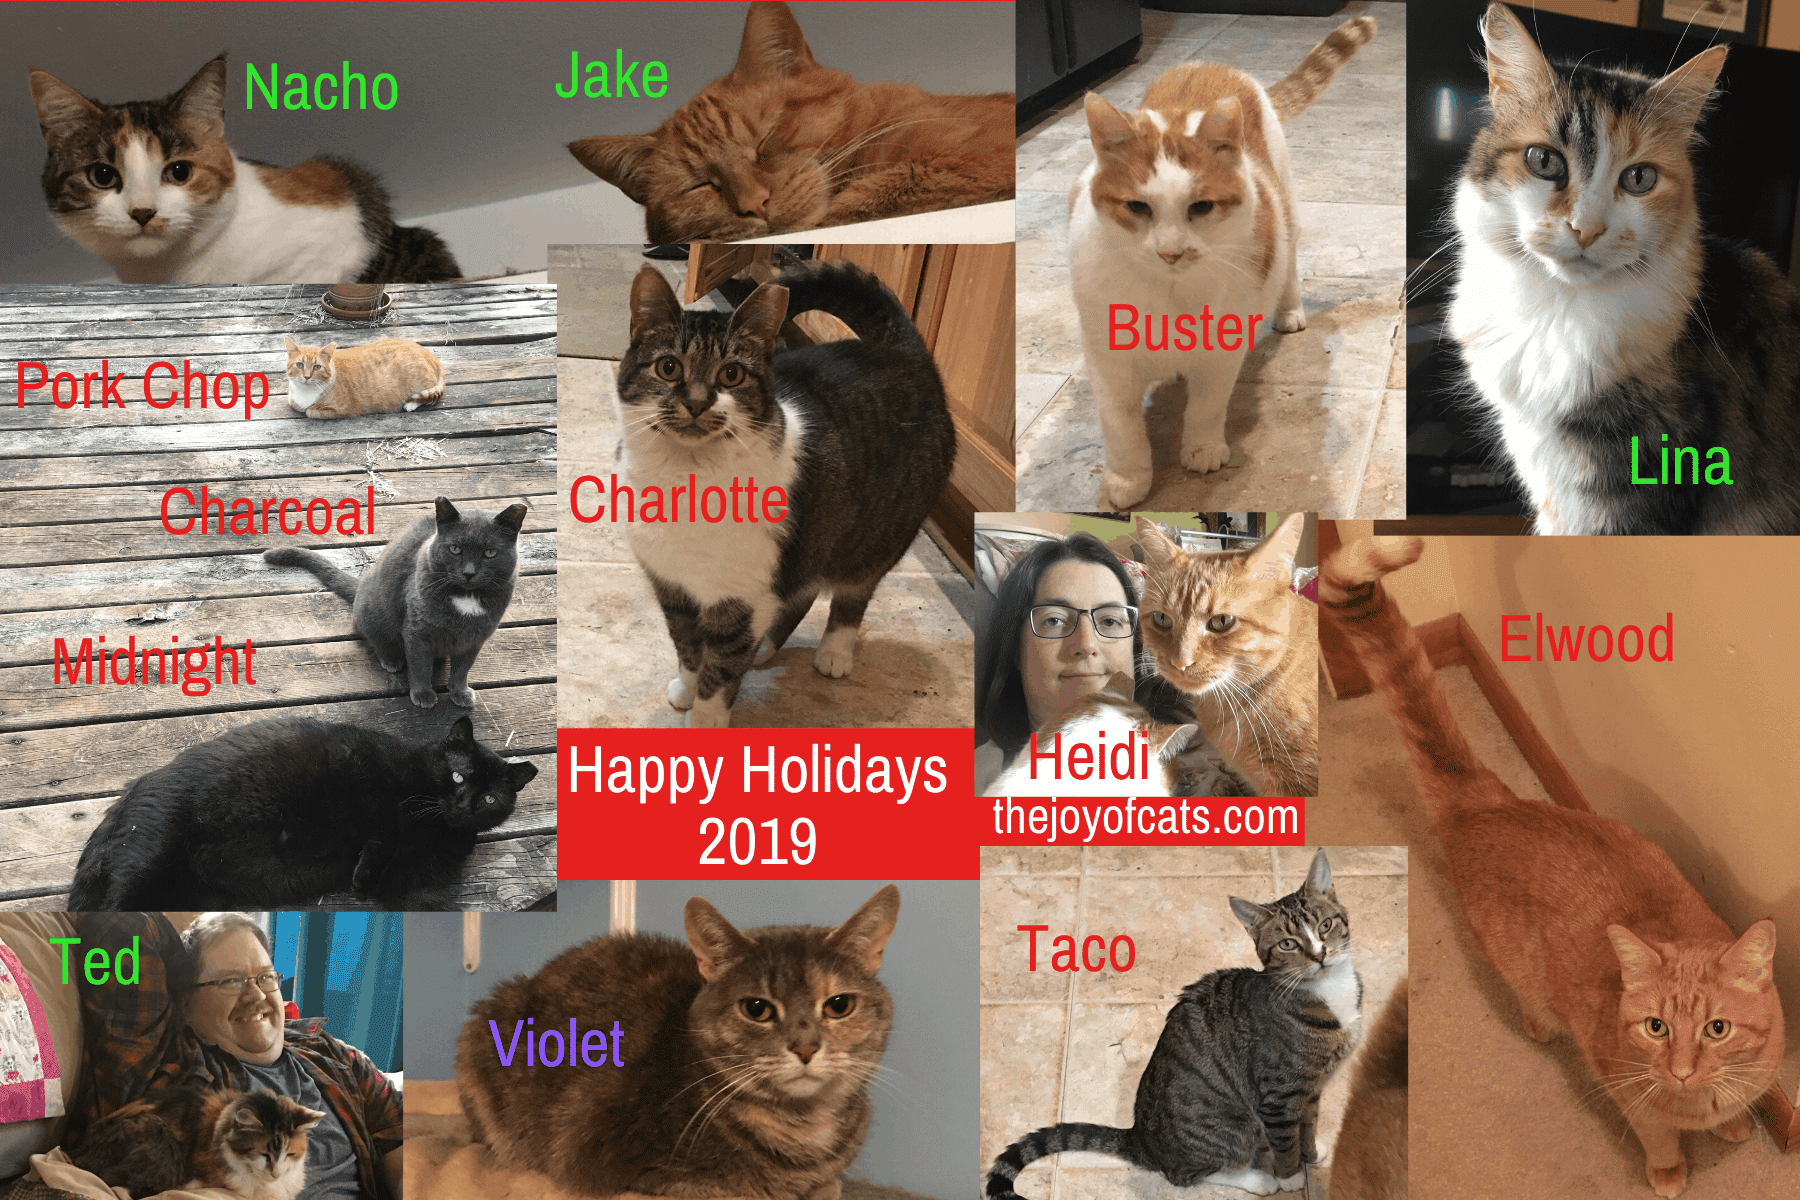 Happy Holidays 2019 from the cats